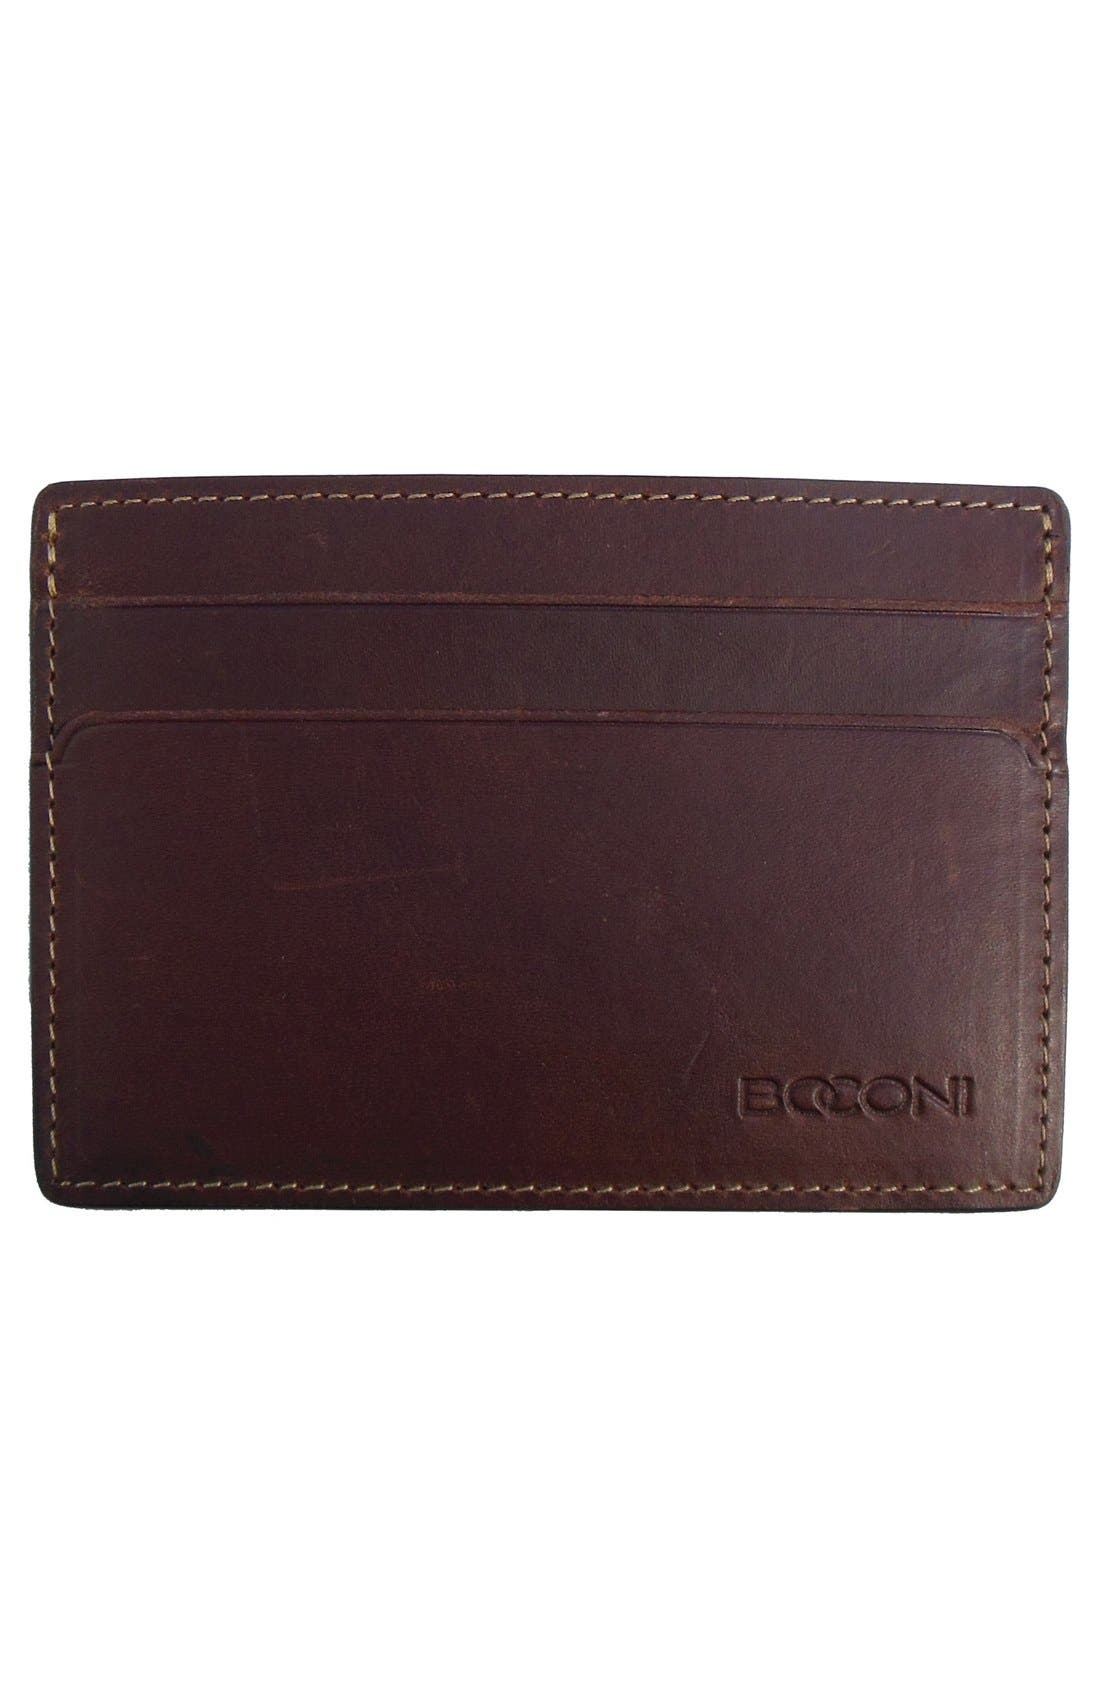 Bryant ID Card Case,                             Alternate thumbnail 2, color,                             241